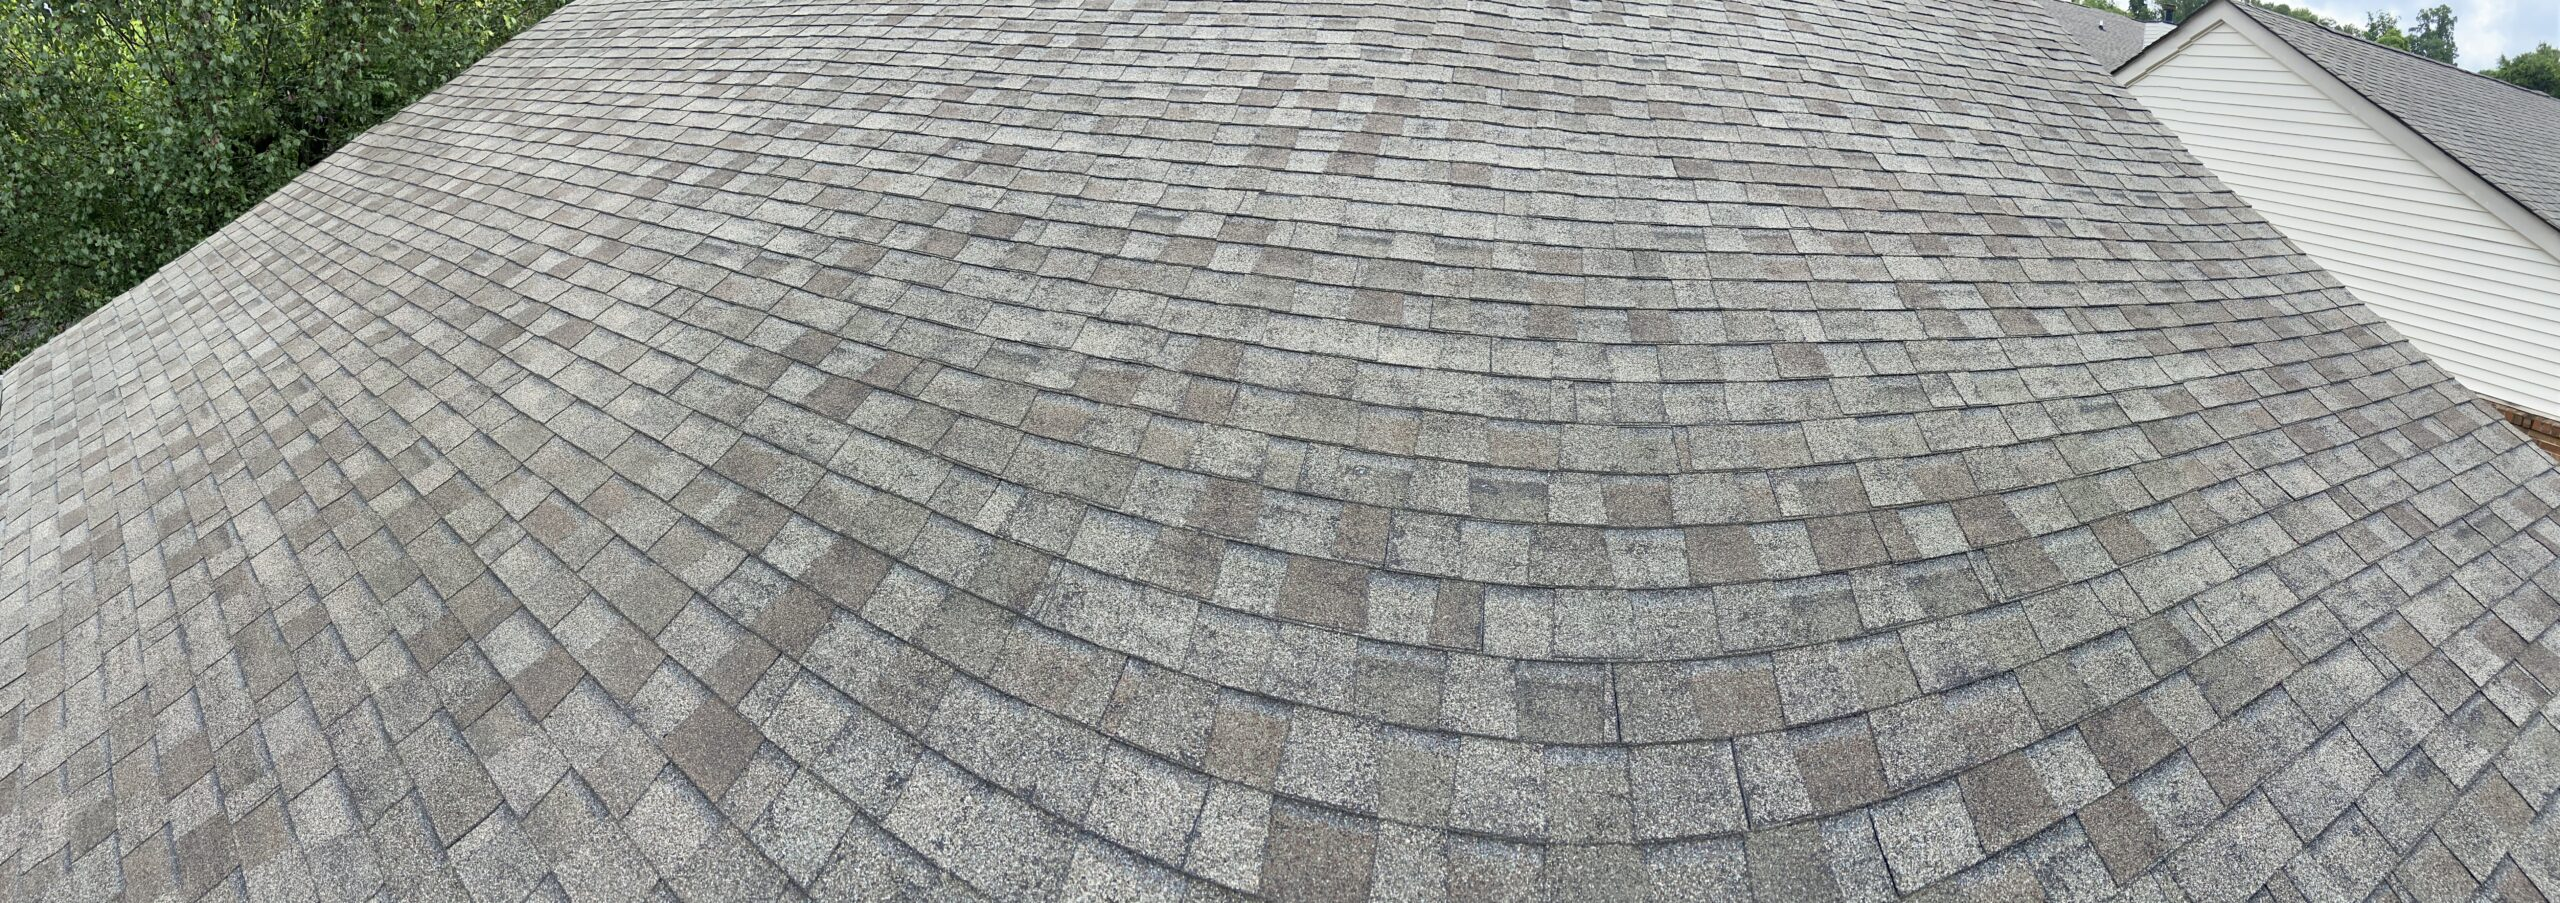 this is a picture of a weathered wood colored shingle that has lots of blistering and cracking